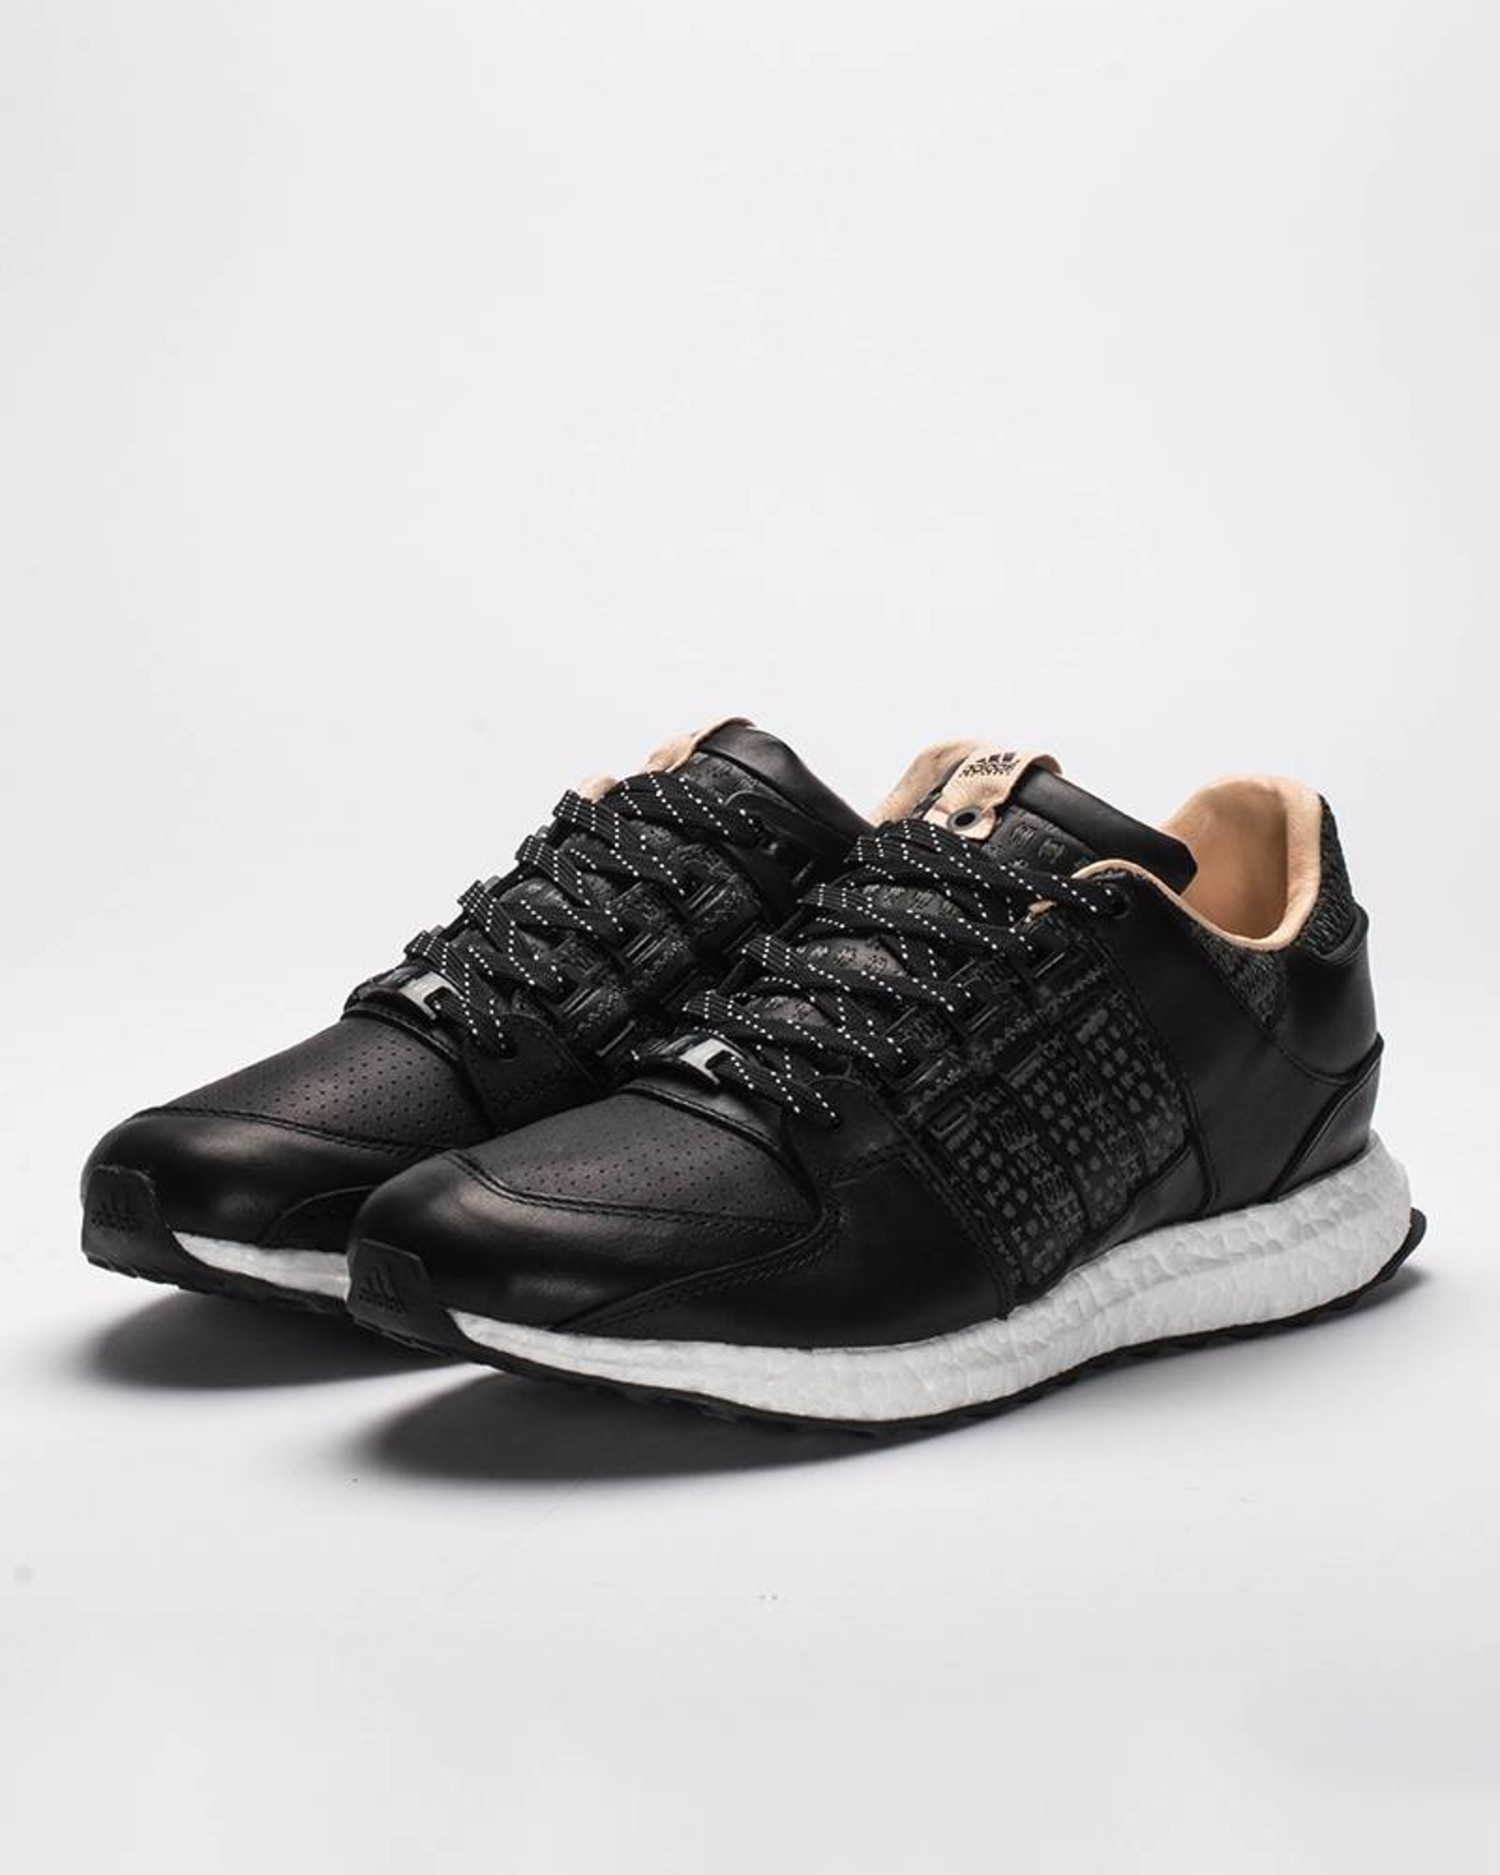 best sneakers b7a90 a4a24 Adidas Adidas consortium x Avenue eqt support 93/16 black/white